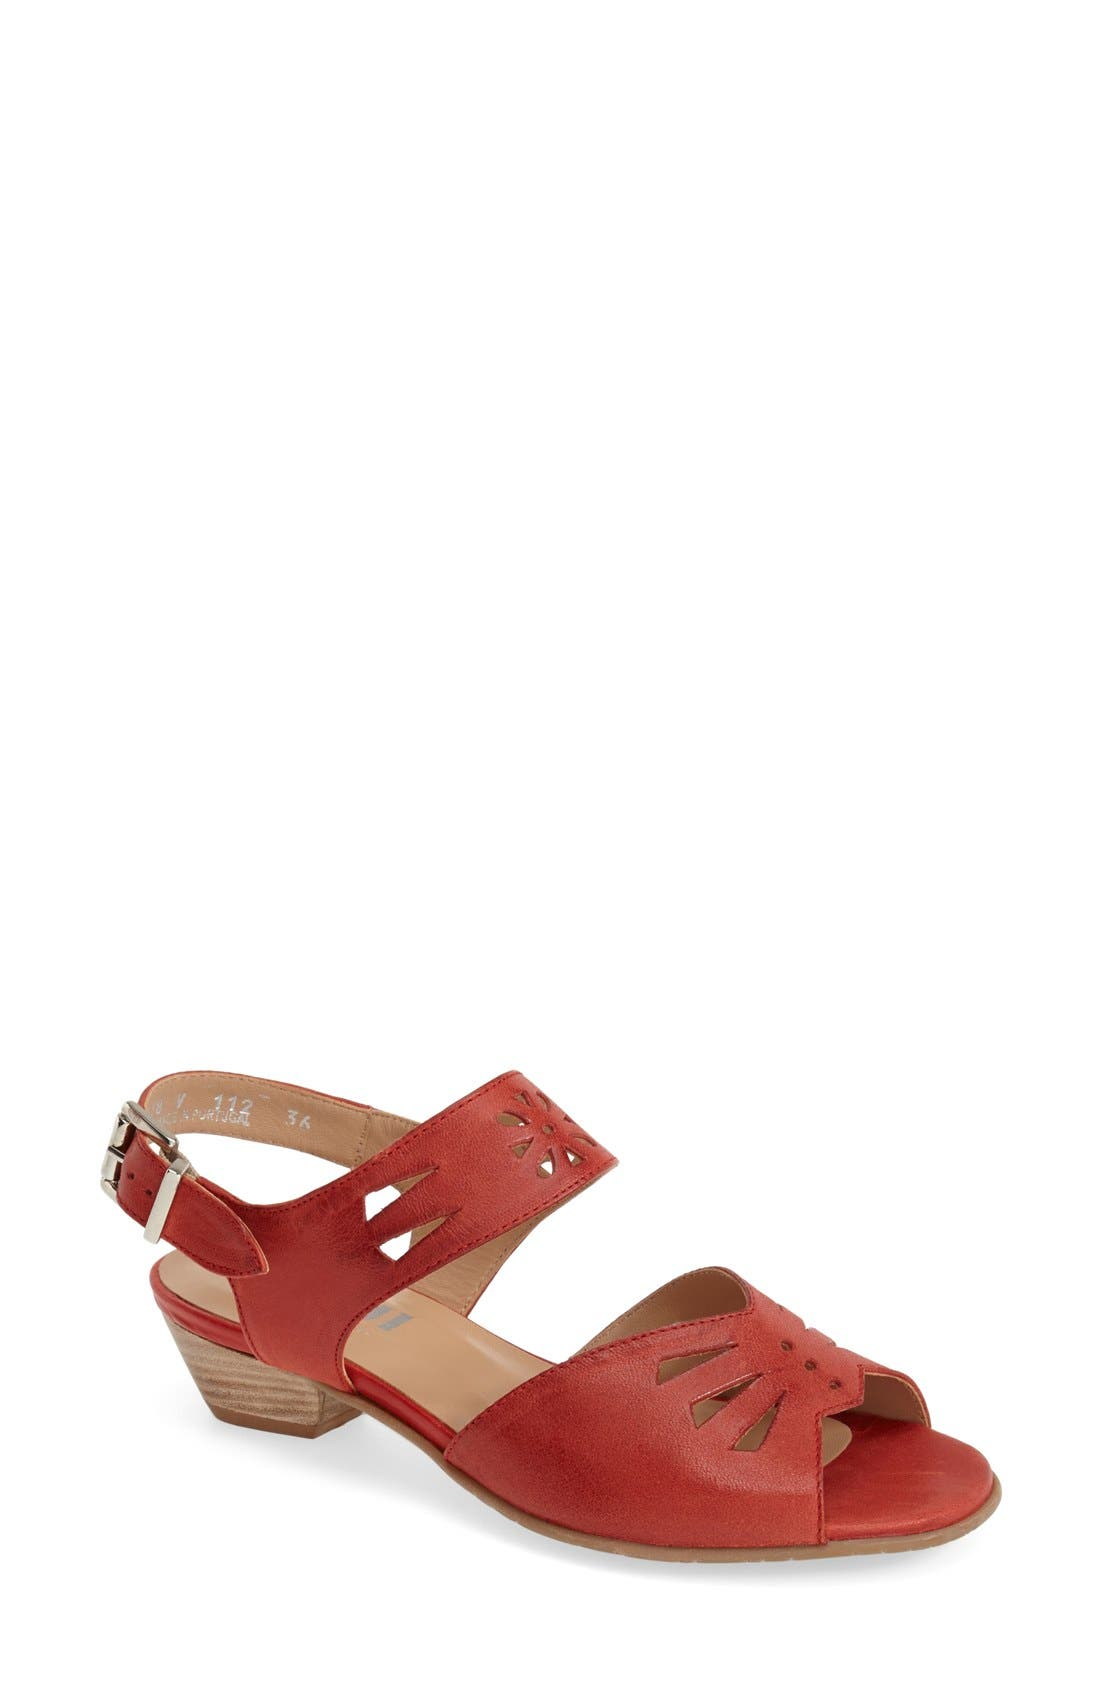 Fidji 'V112' Perforated Leather Sandal (Women)